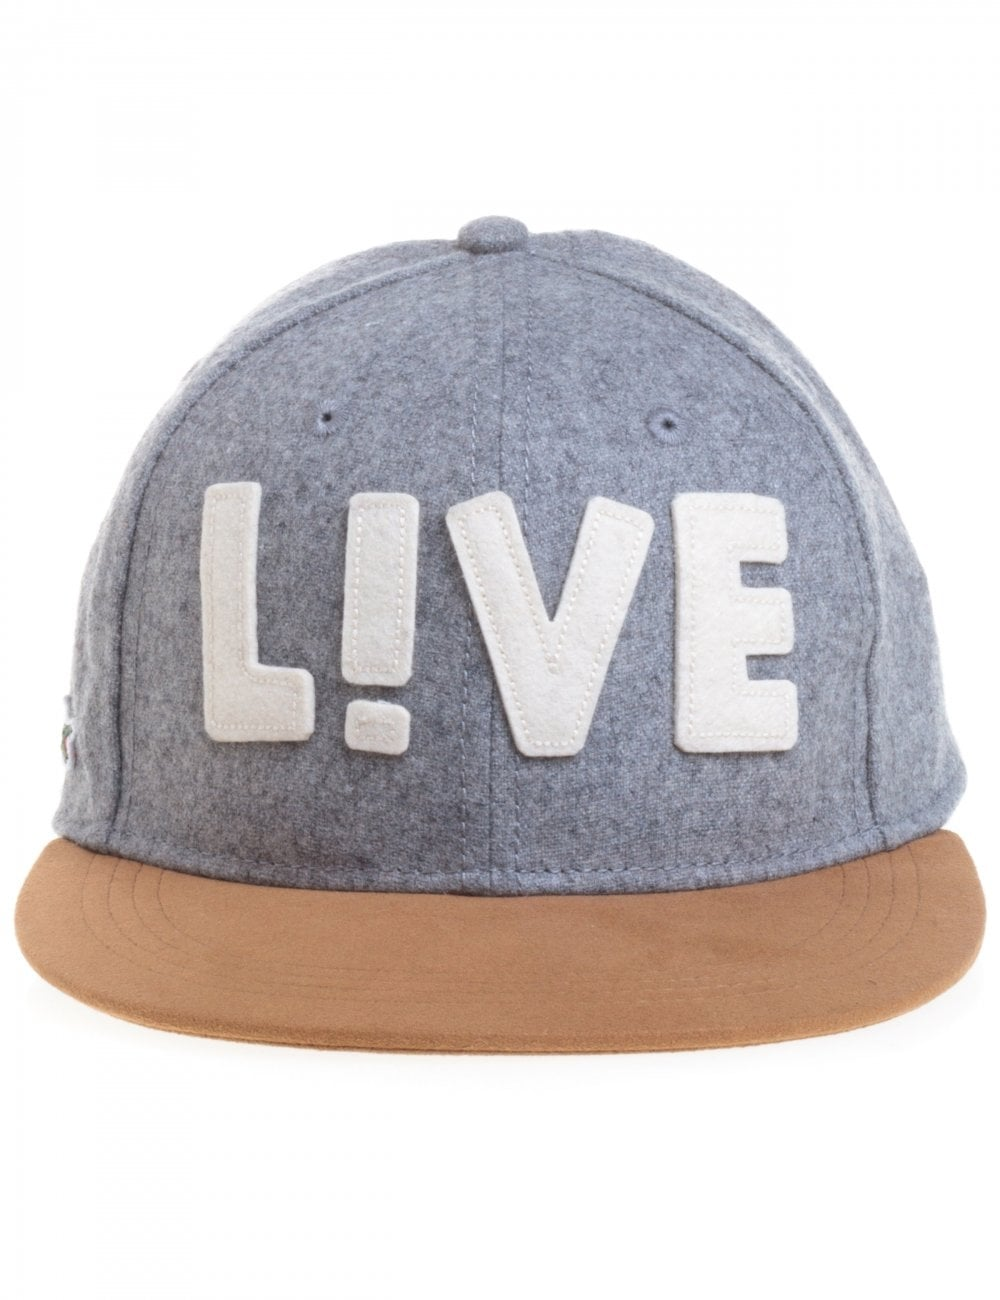 3b2e3c3e06a Lacoste Live Flannel Cap - Silver - Accessories from Fat Buddha Store UK